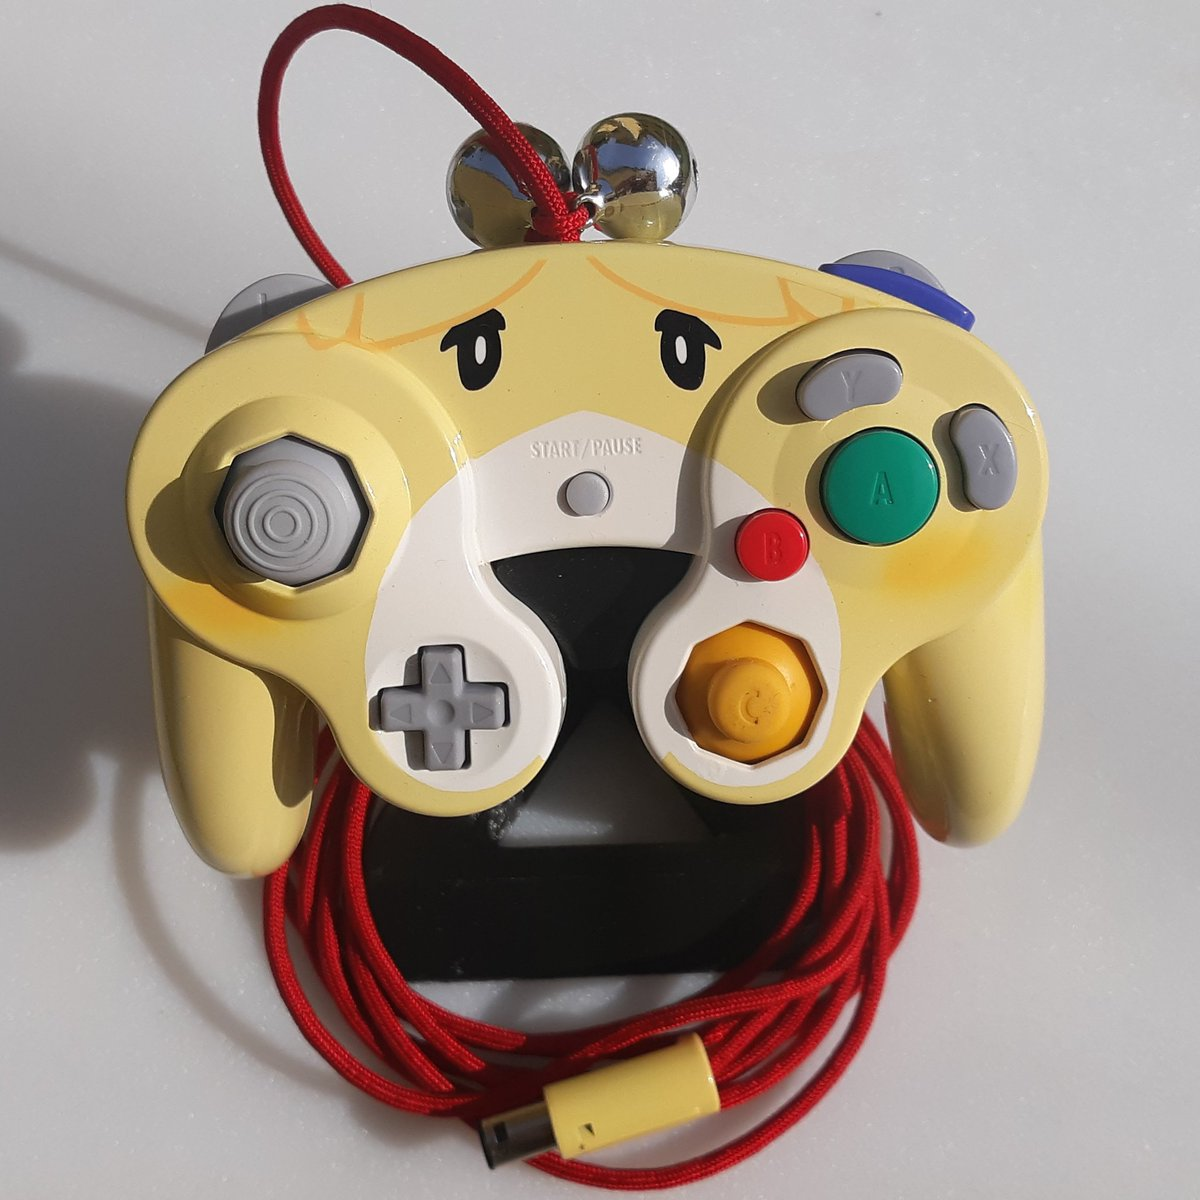 🔔Hey im doing a 1k follower giveaway!🔔 Since the jingle-bell isabelle controller is what got me here, I might as well make another one to give away. All you have to do is retweet this tweet and follow me. Giveaway ends at the end of the month.